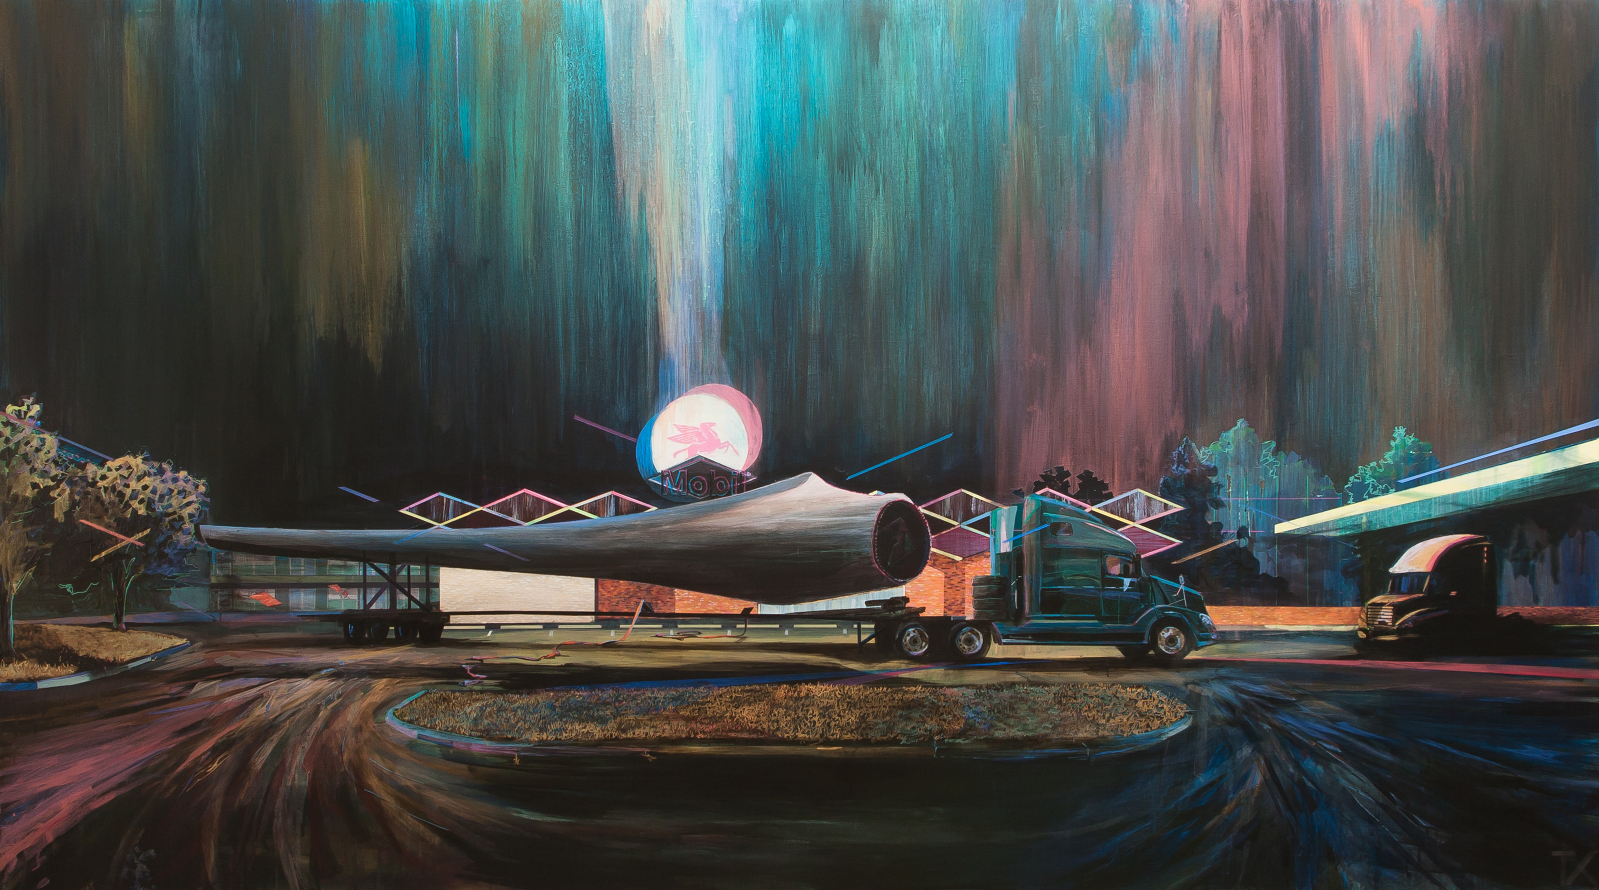 Texas ,2012, acrylic on canvas,61 x 102 in., private commission